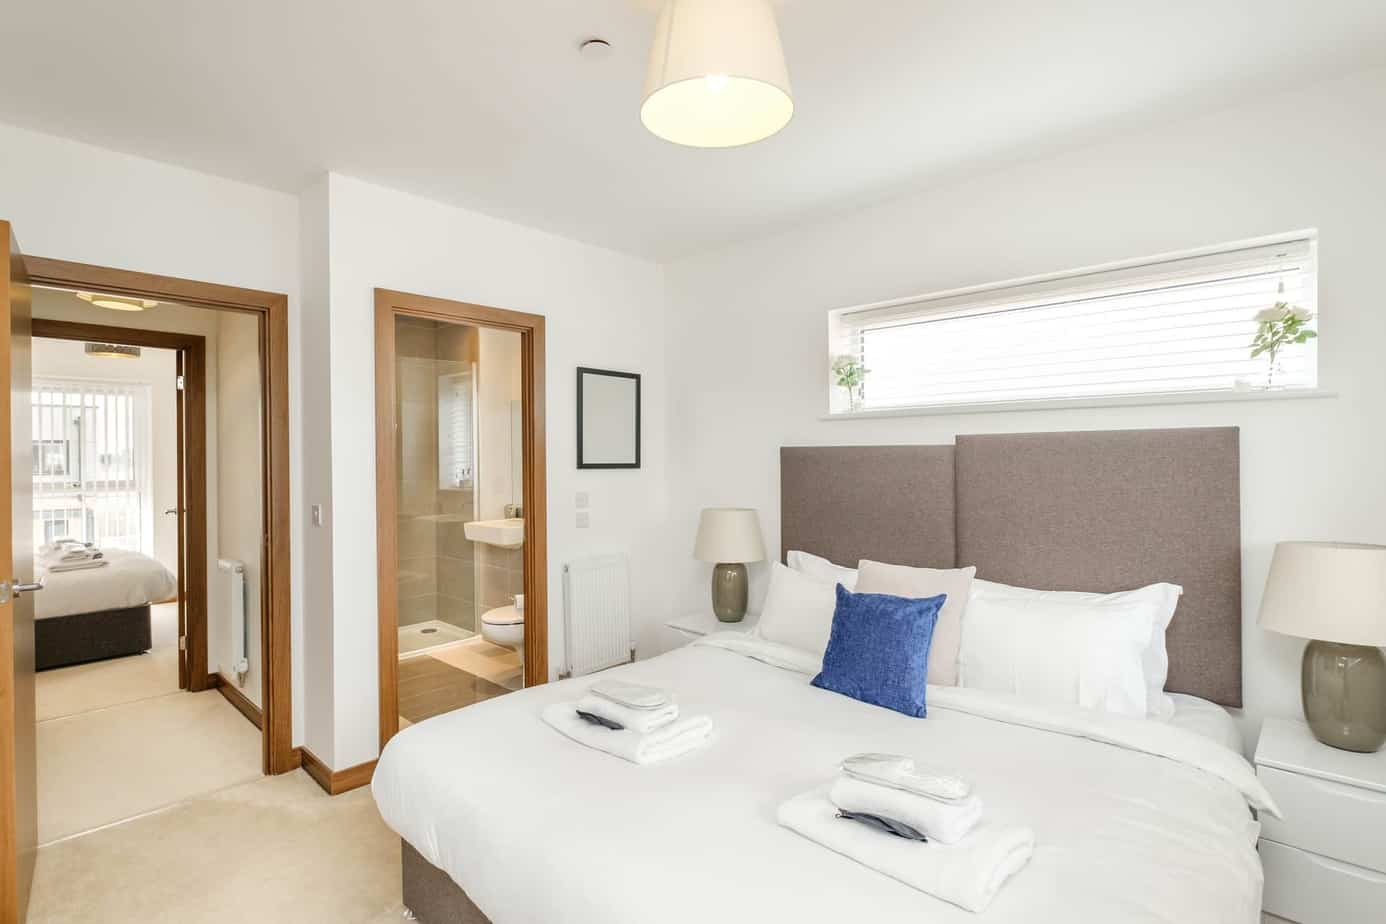 Tailored Stays grand central cambridge serviced apartment master bedroon with ensuite with ability to be twin beds